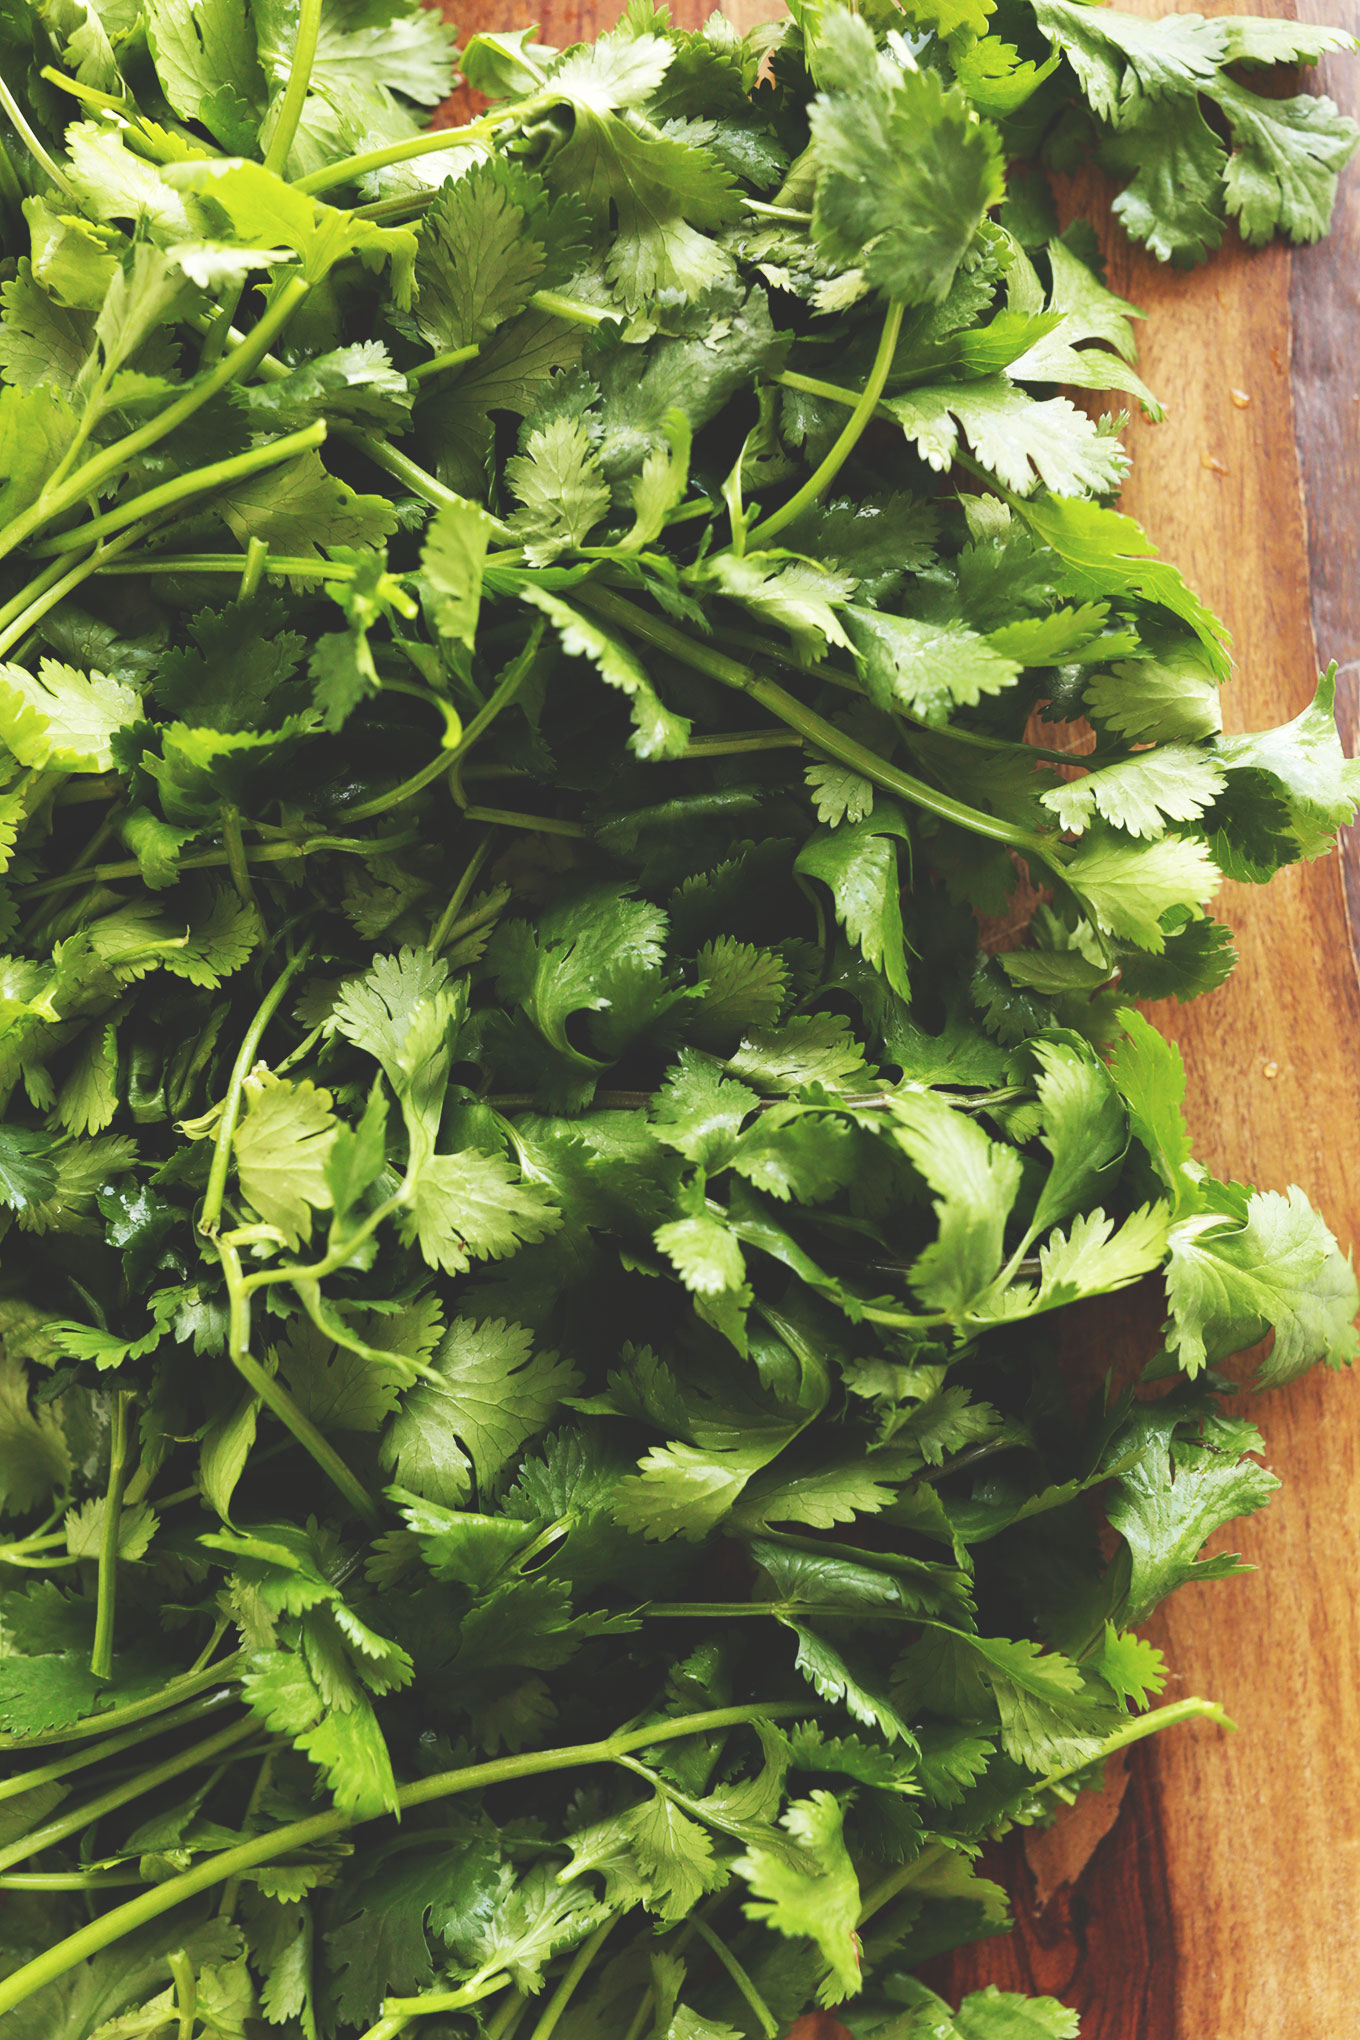 Bunch of freshly washed cilantro for making homemade spring rolls